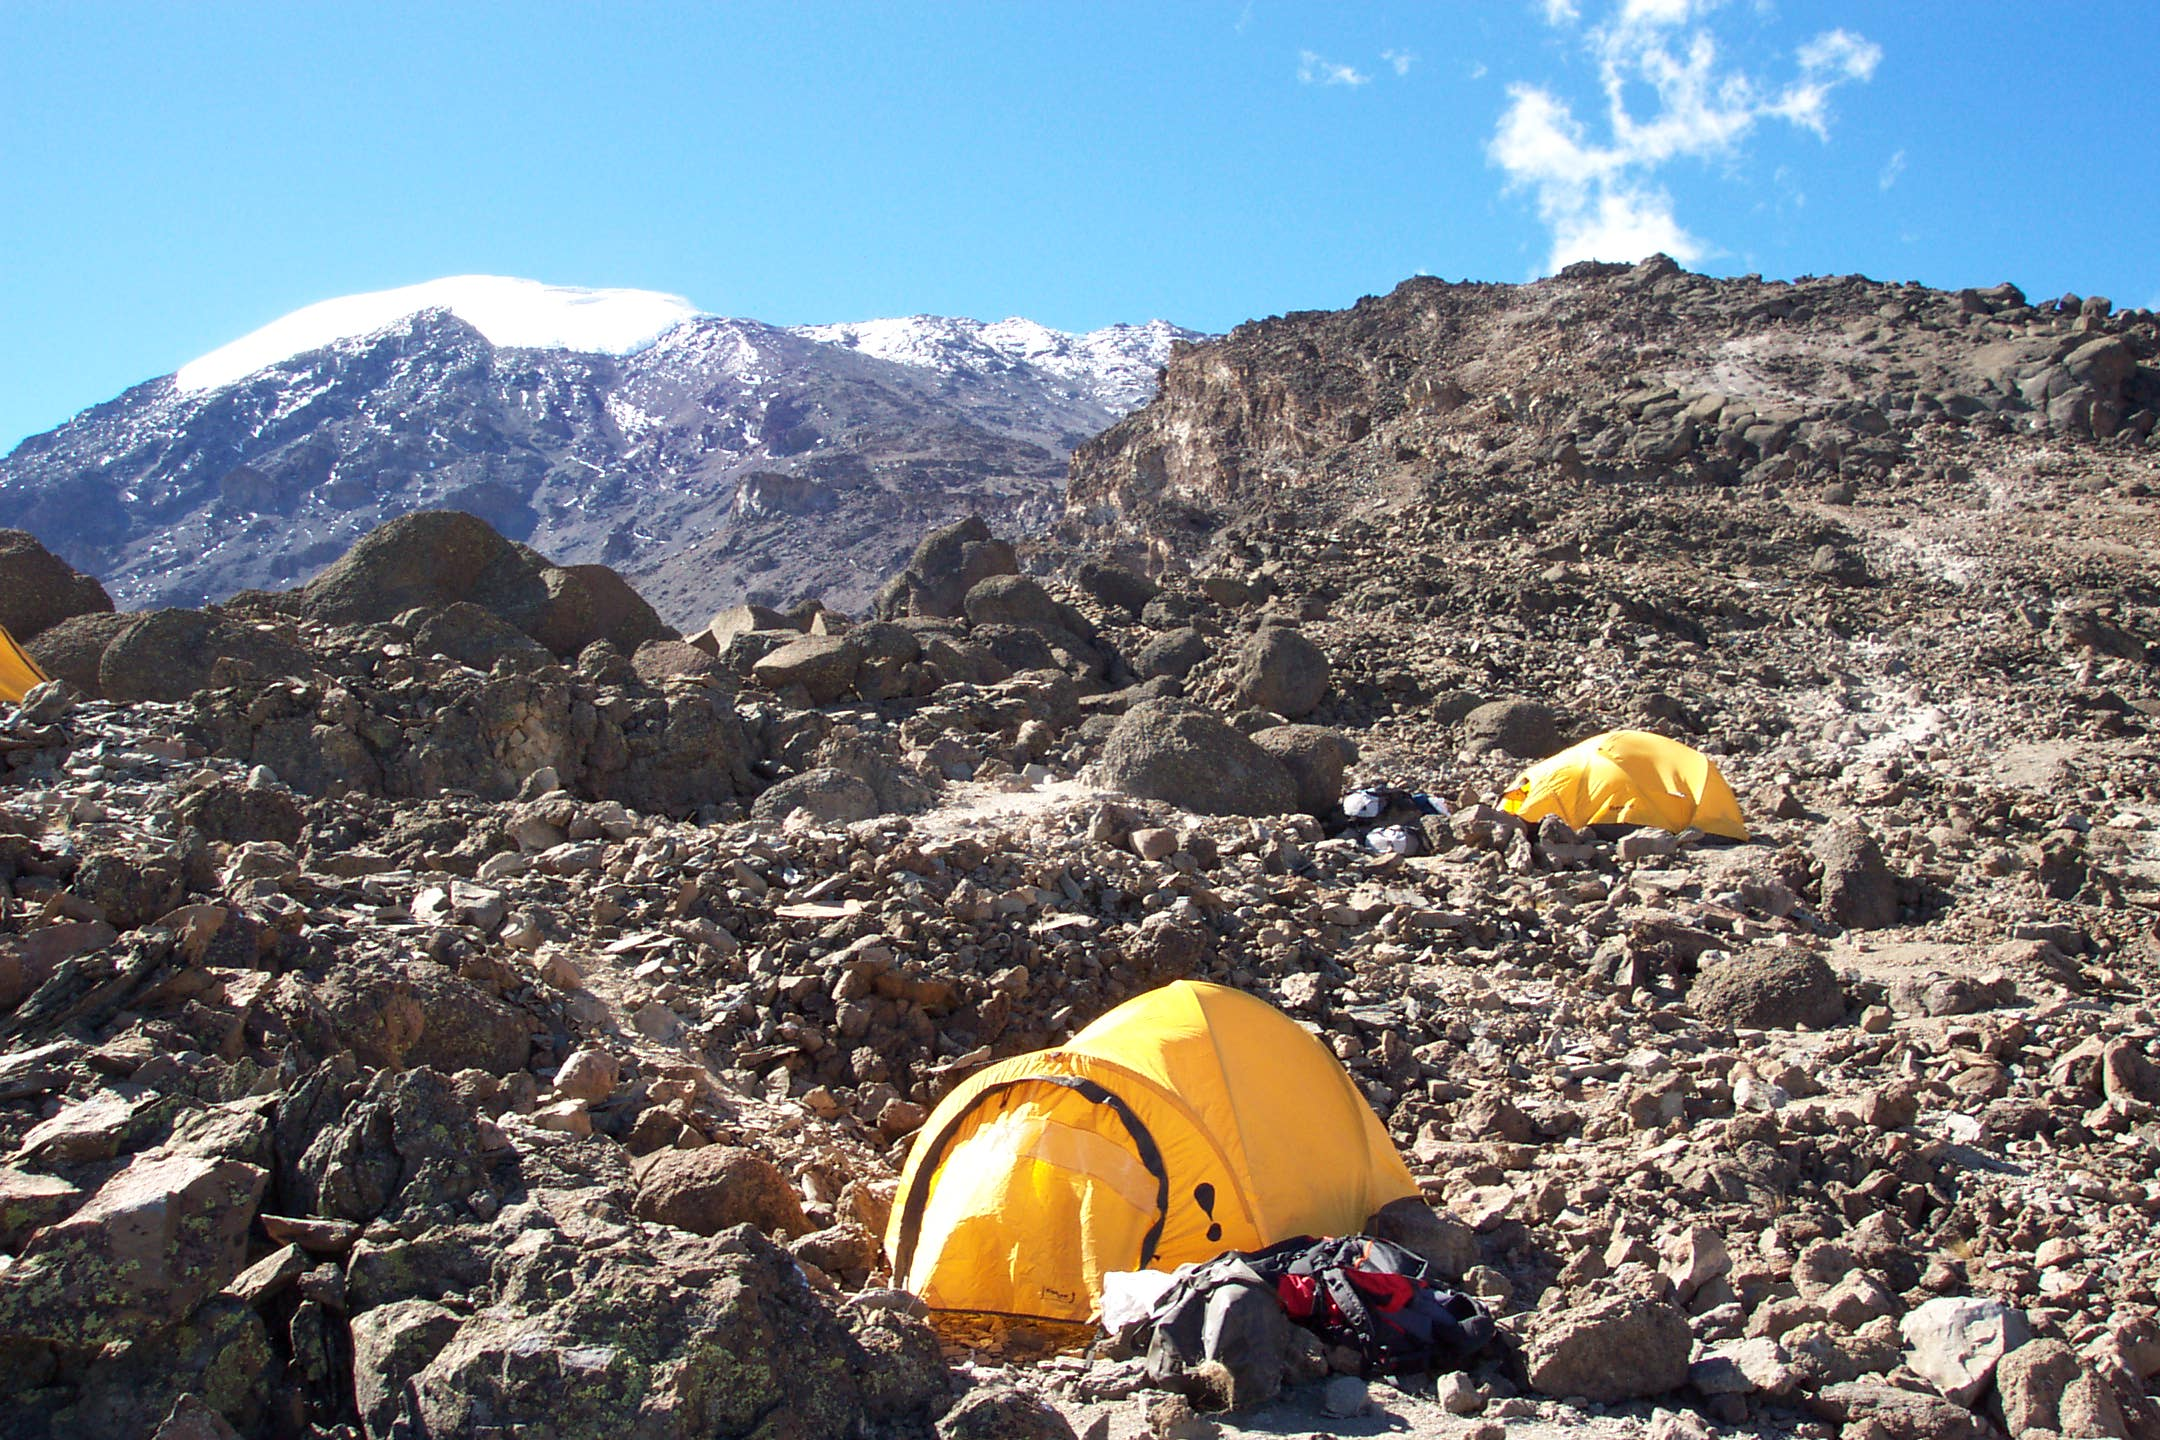 Barafu Camp on Kili  (Photo by Eric Simonson)